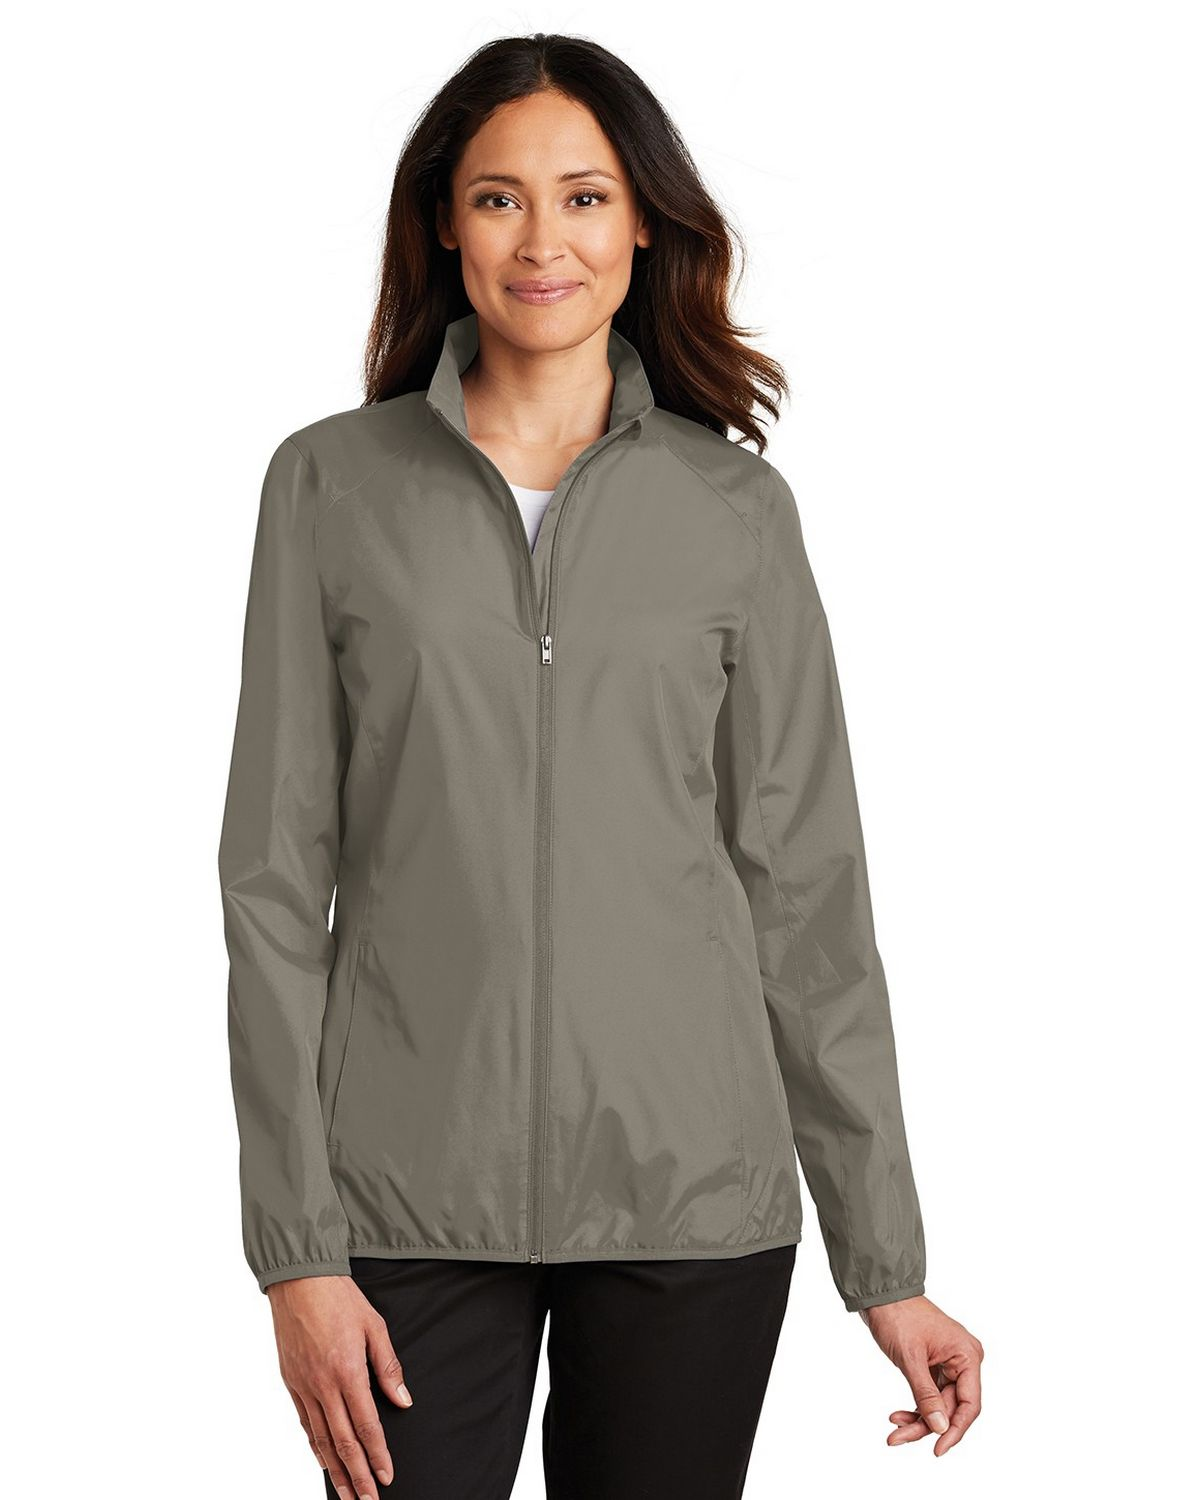 Port Authority L344 Ladies Zephyr Full-Zip Jacket